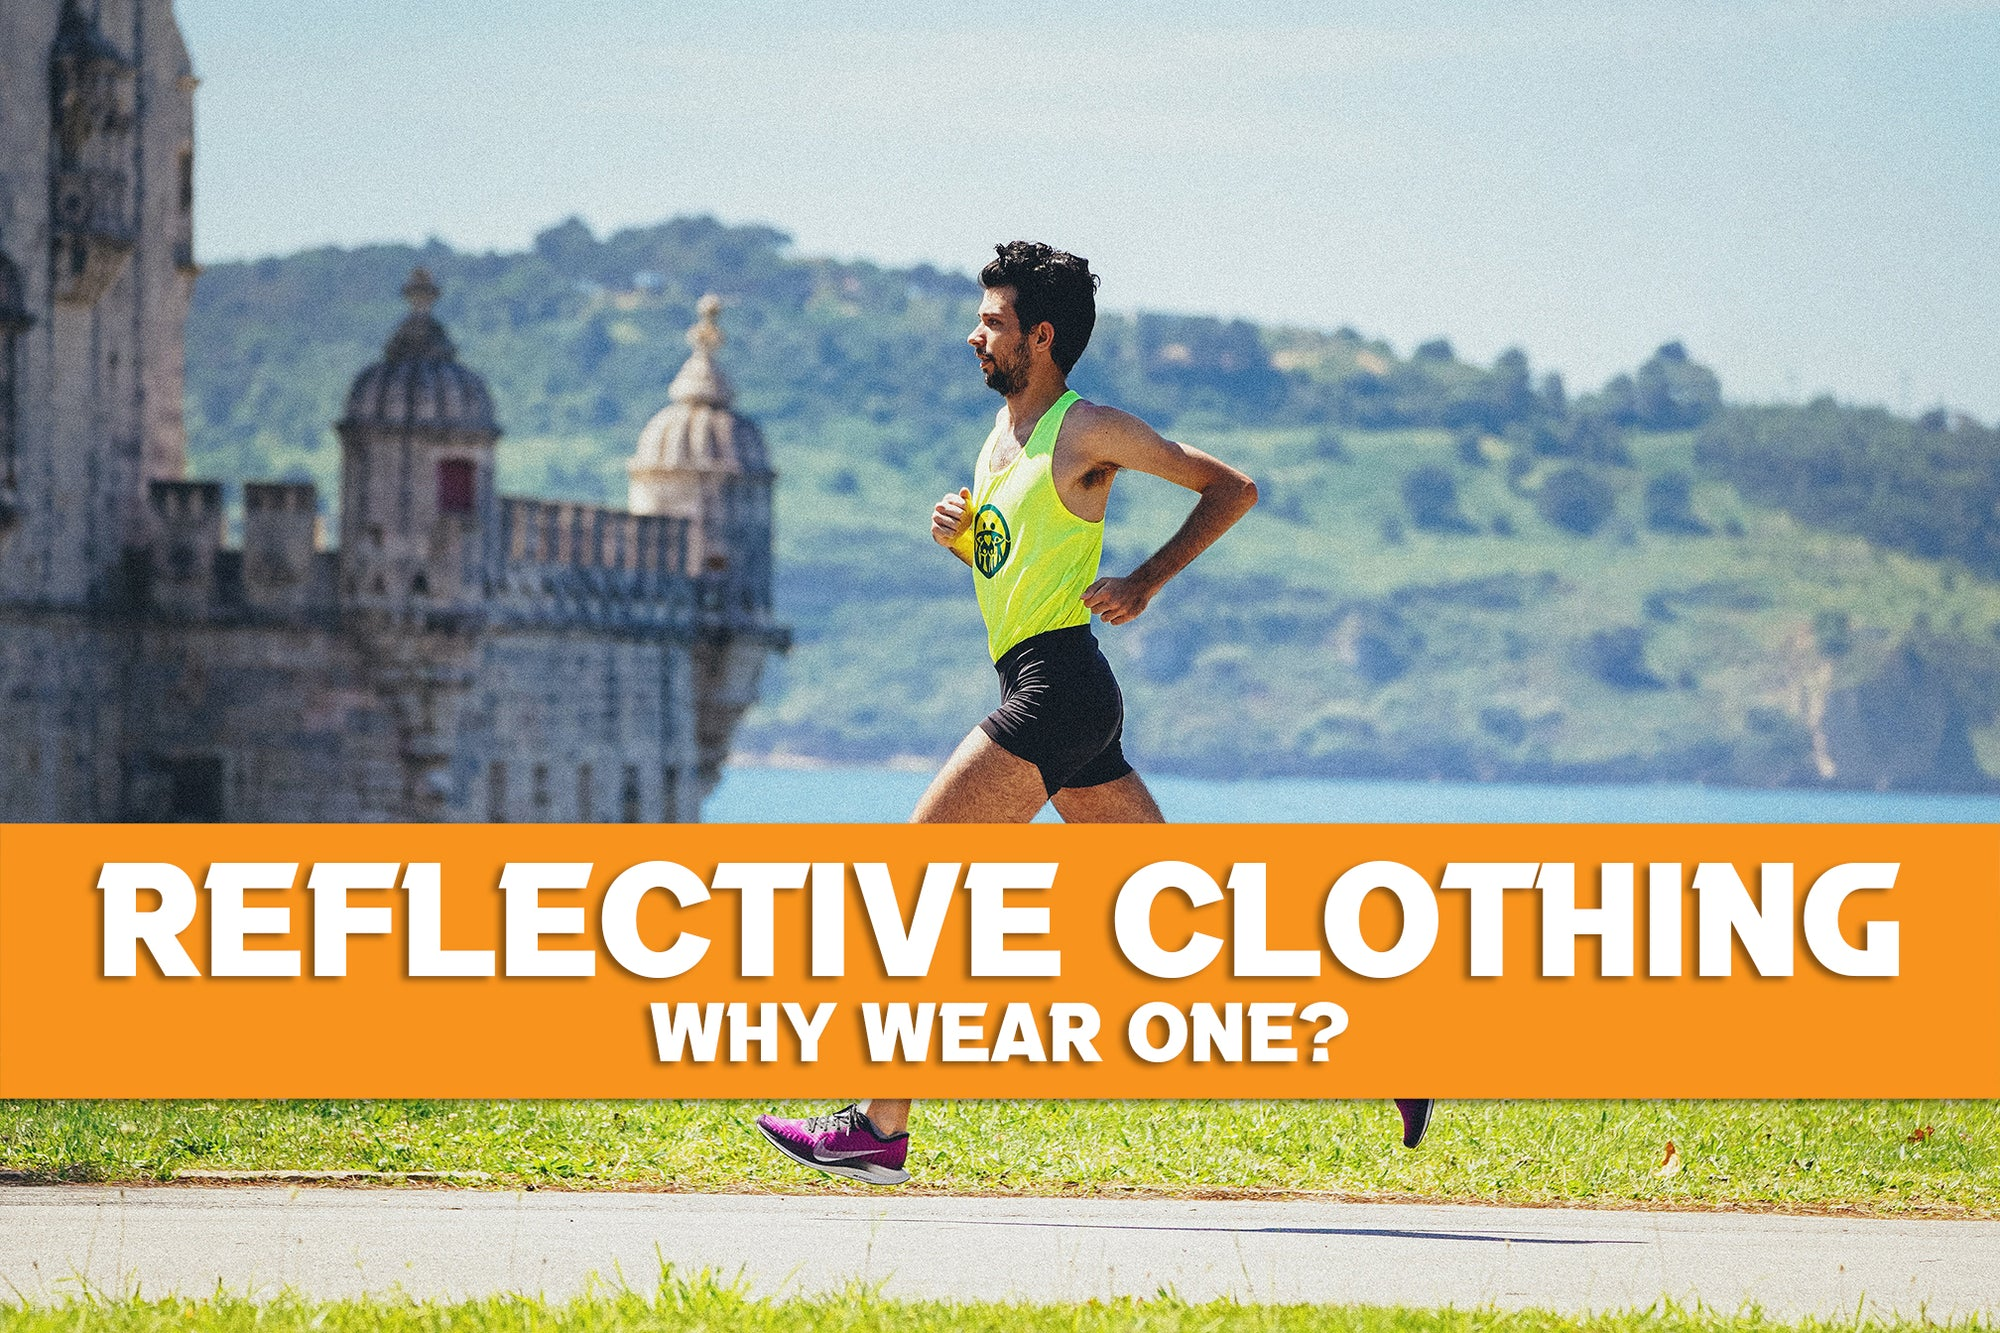 Why Should You Wear Reflective Clothing While Running?